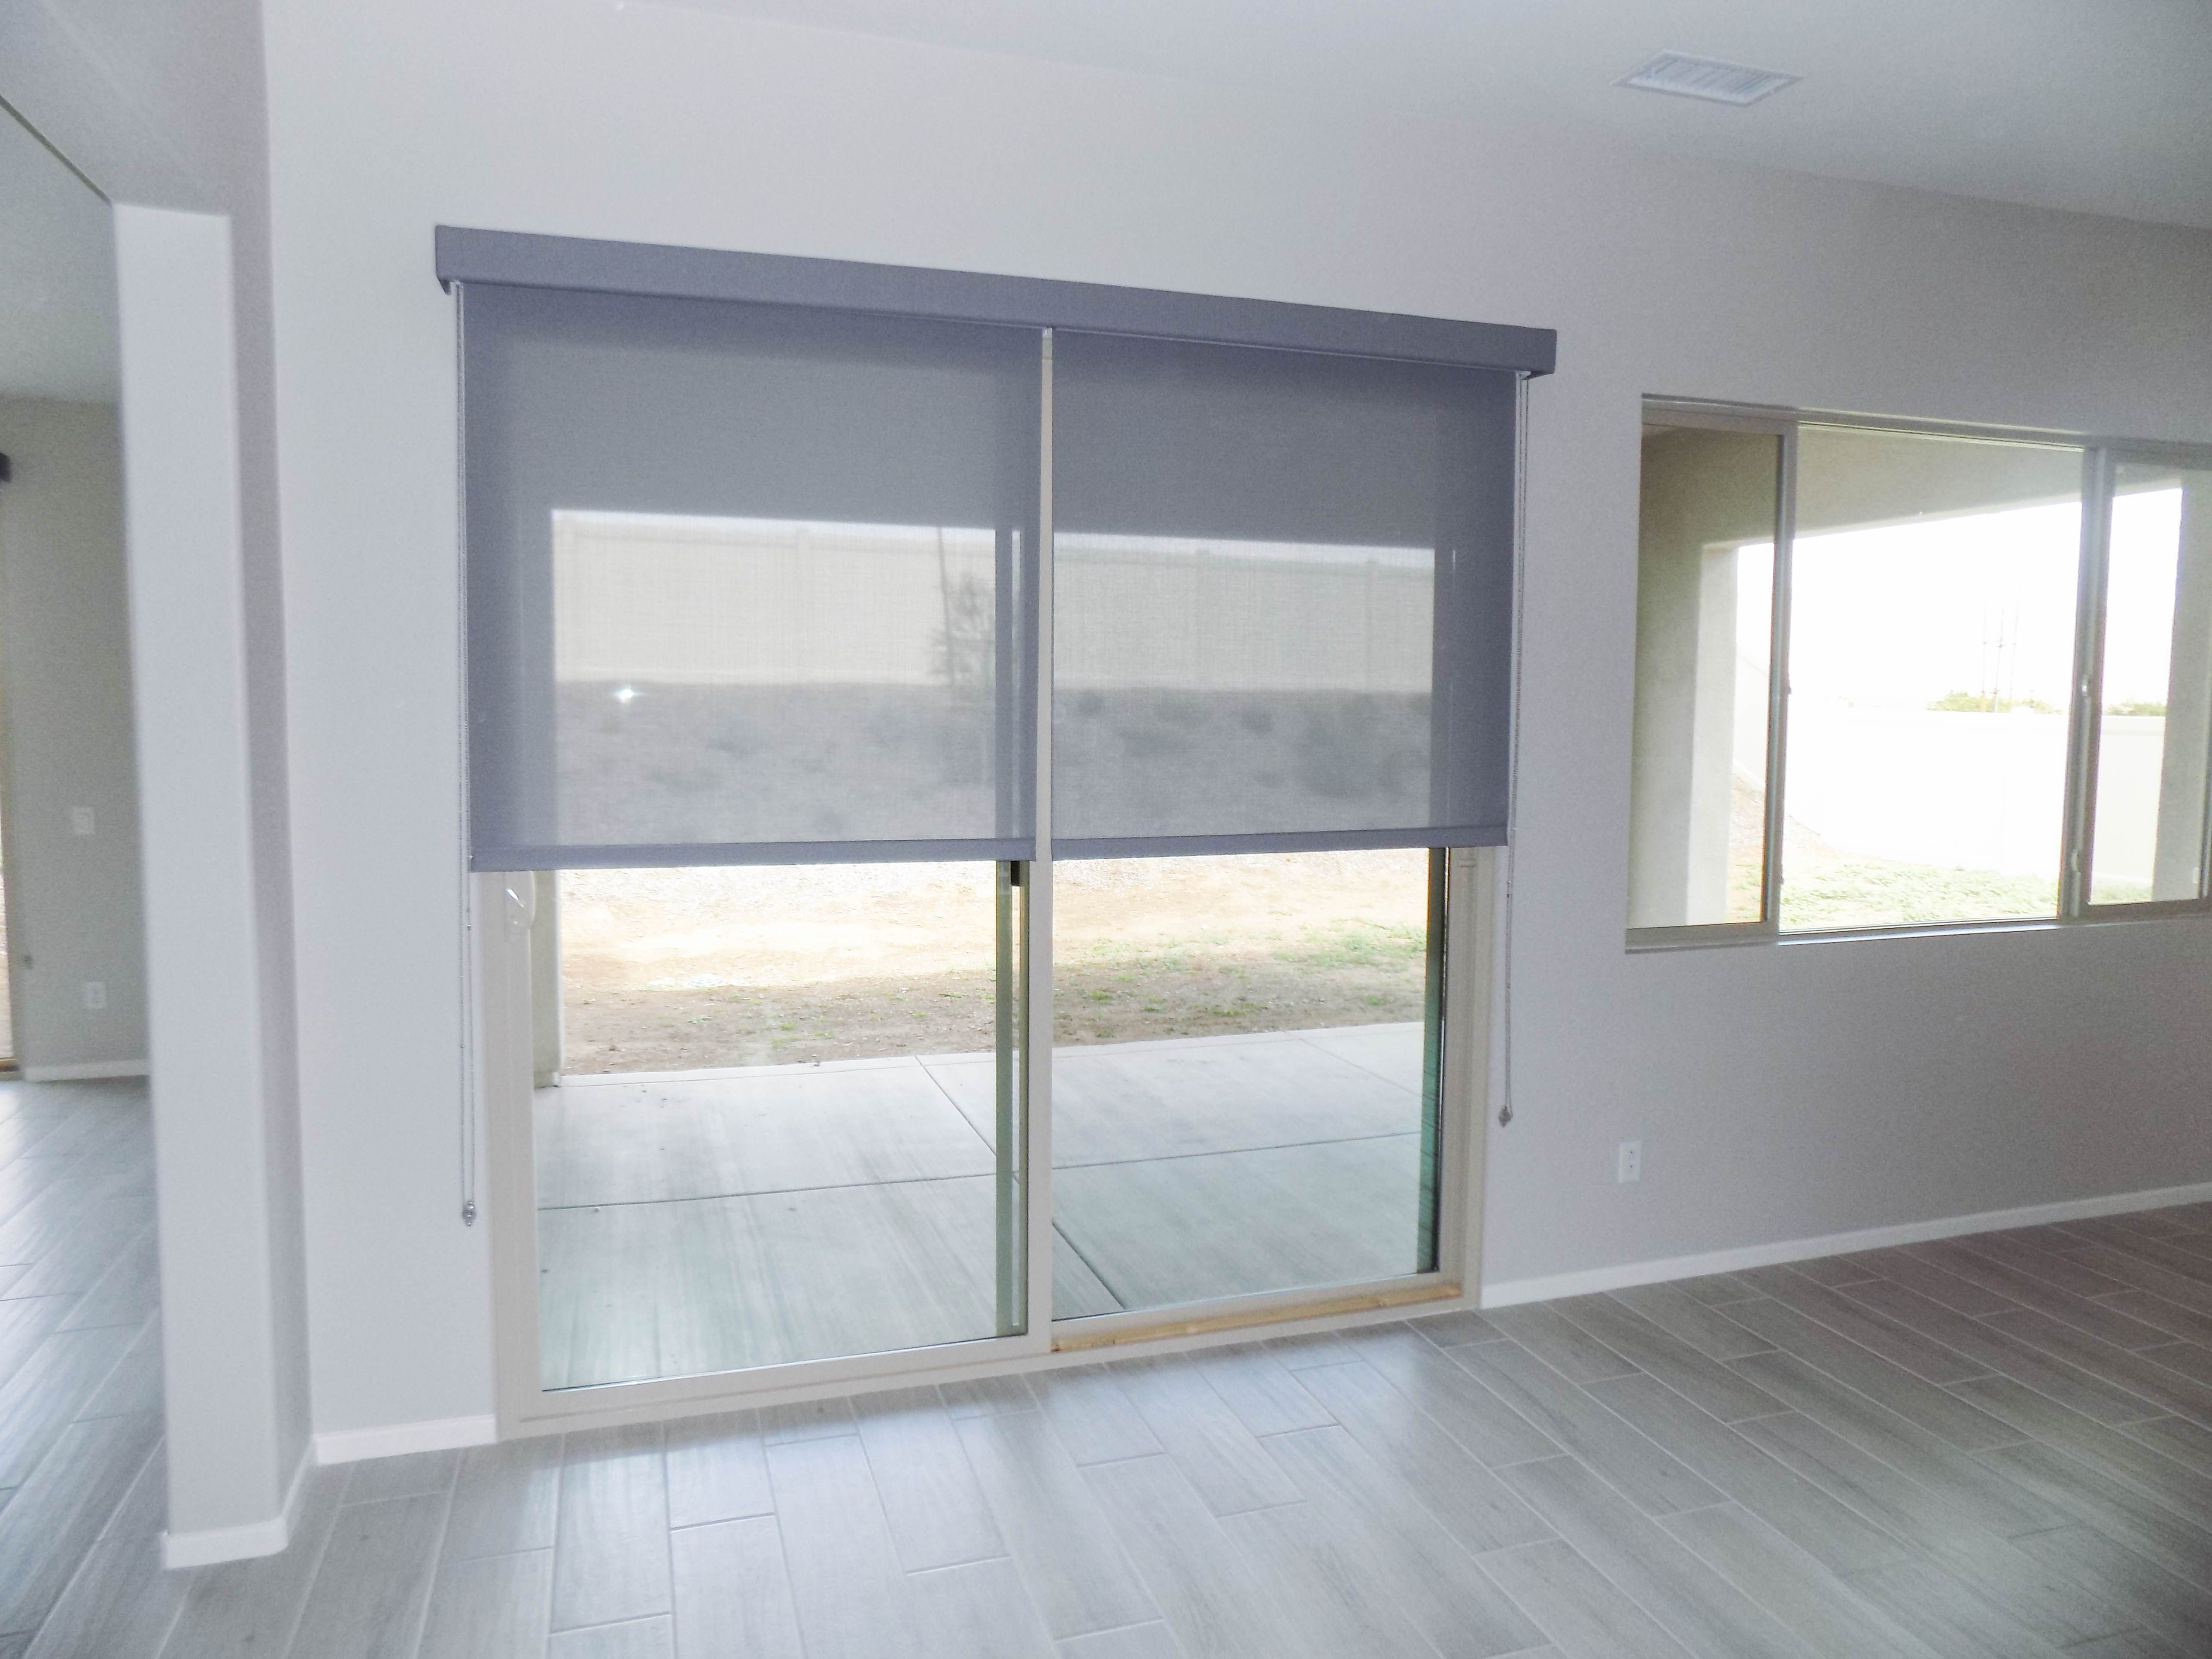 We installed these indoor translucent roller shades over a sliding